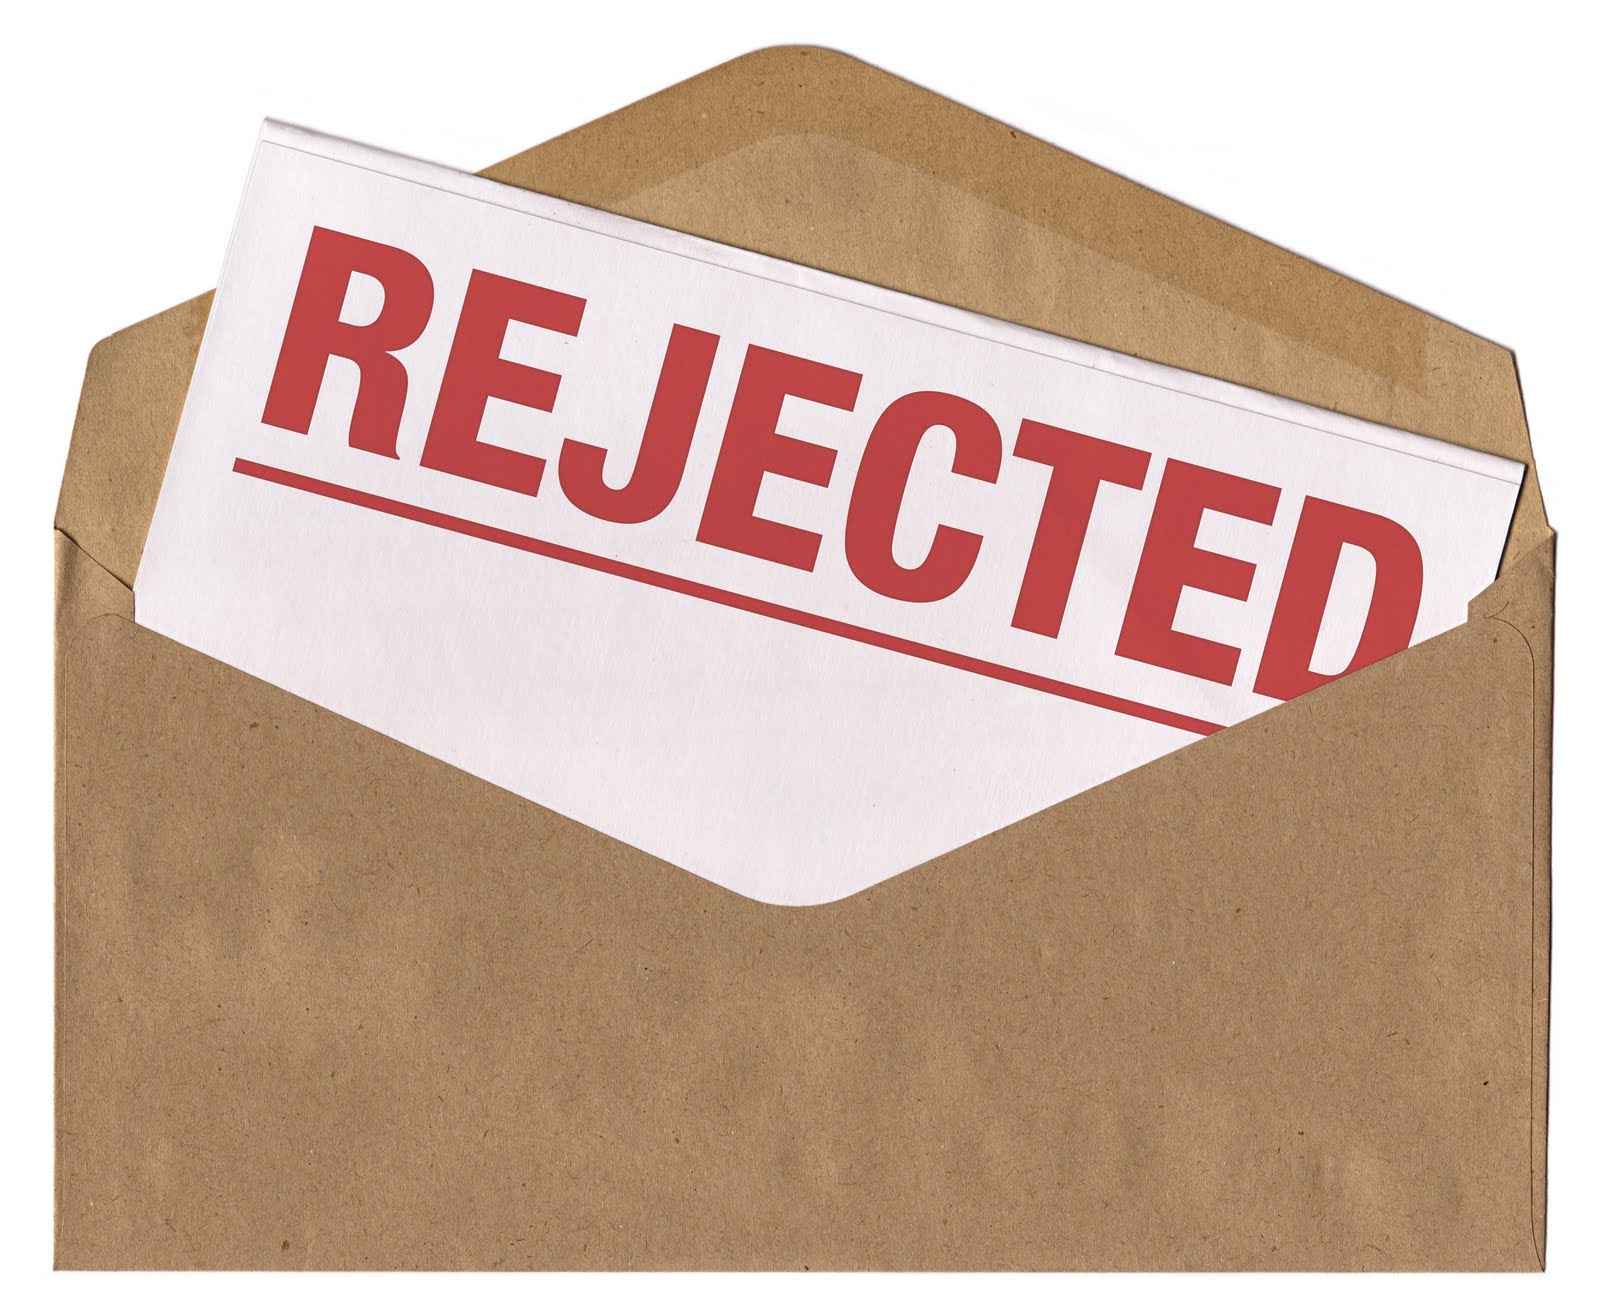 Too Many Rejection Letters